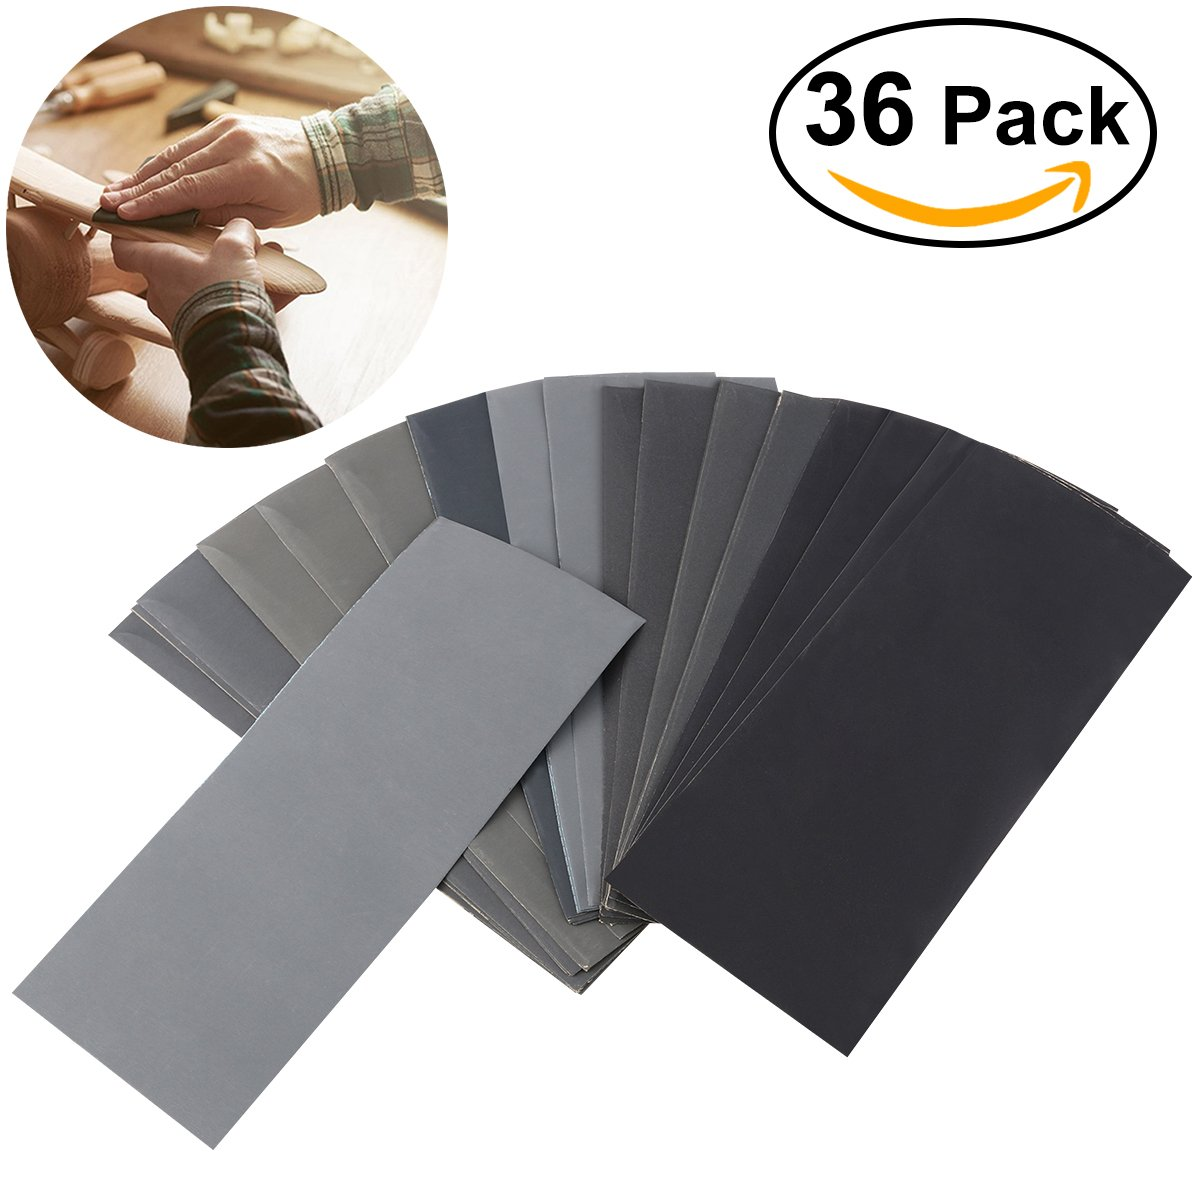 UEETEK Dry Wet Waterproof Sandpaper Sheets Assorted Grit of 400/ 600/ 800/ 1000/ 1200/ 1500/ 2000/ 2500/ 3000 for Automotive Sanding Wood Furniture Finishing - PACK OF 36